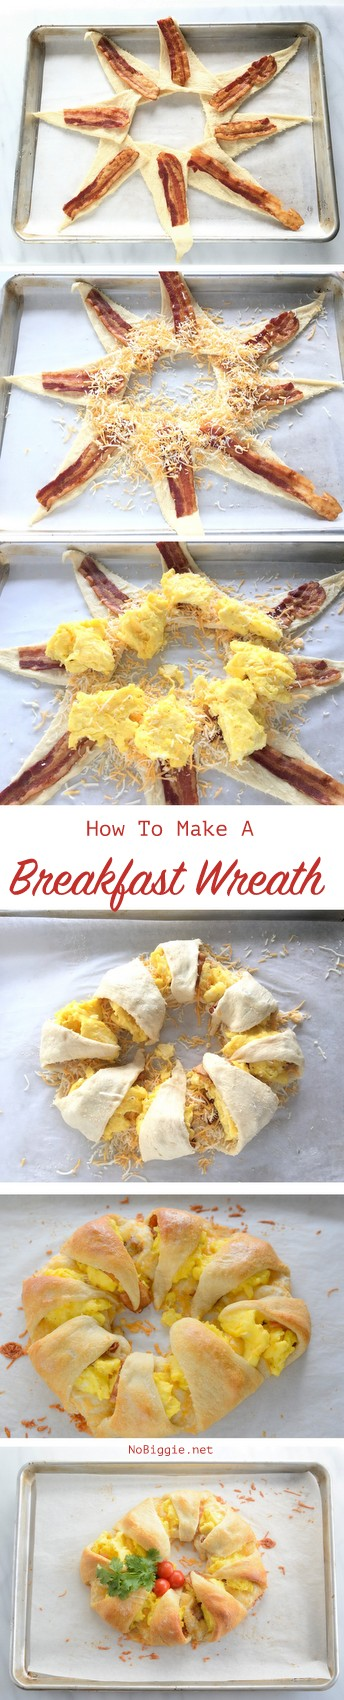 How to make a breakfast wreath | so easy and so pretty. My family loves when I make this. recipe on NoBiggie.net